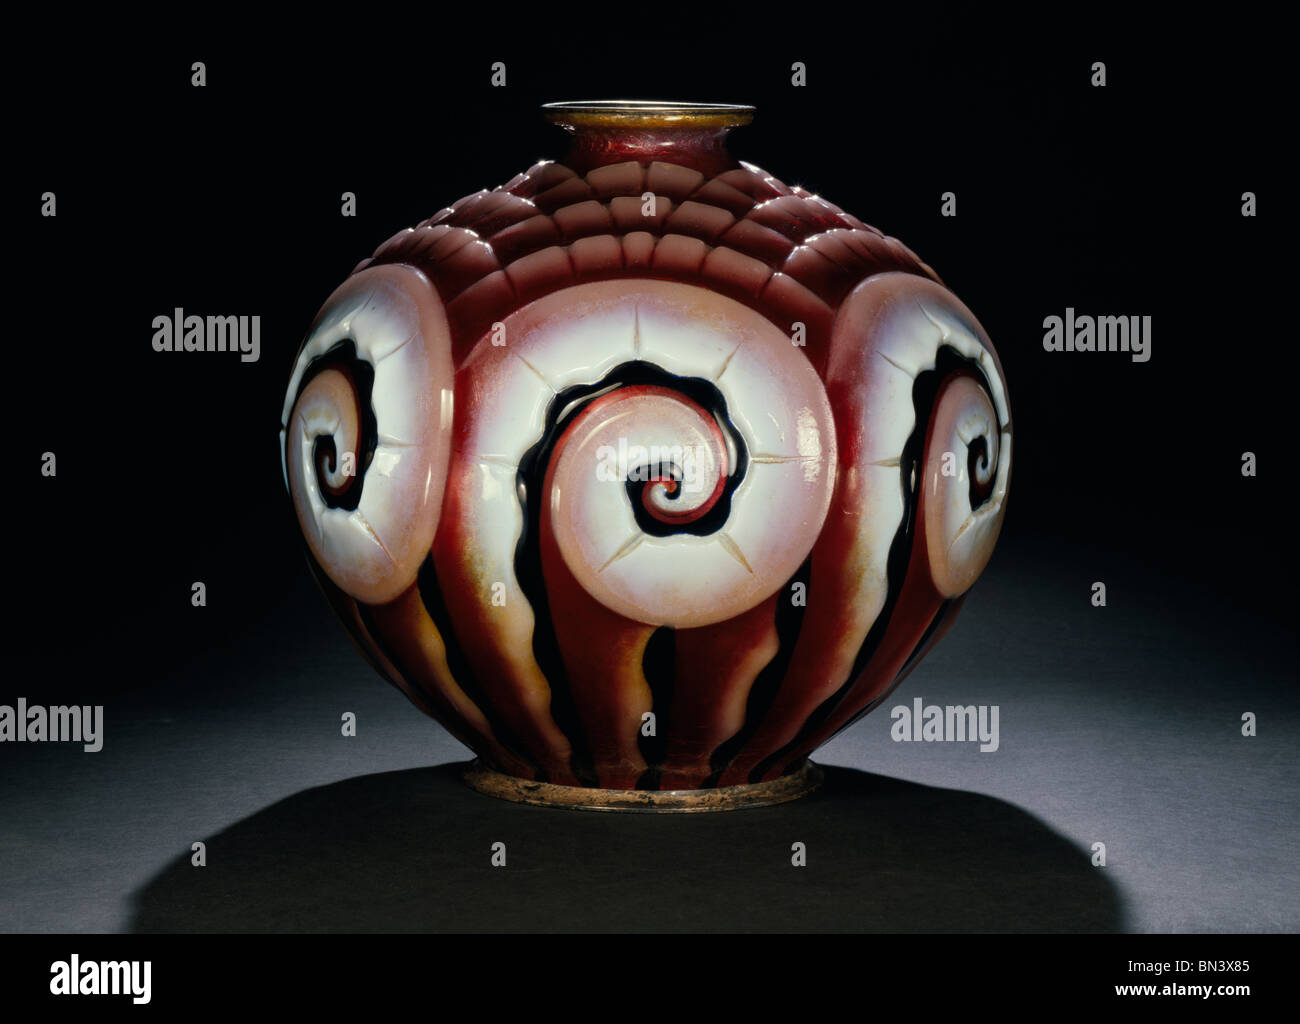 Vase signed by Camille Fauré France c 1925 - Stock Image